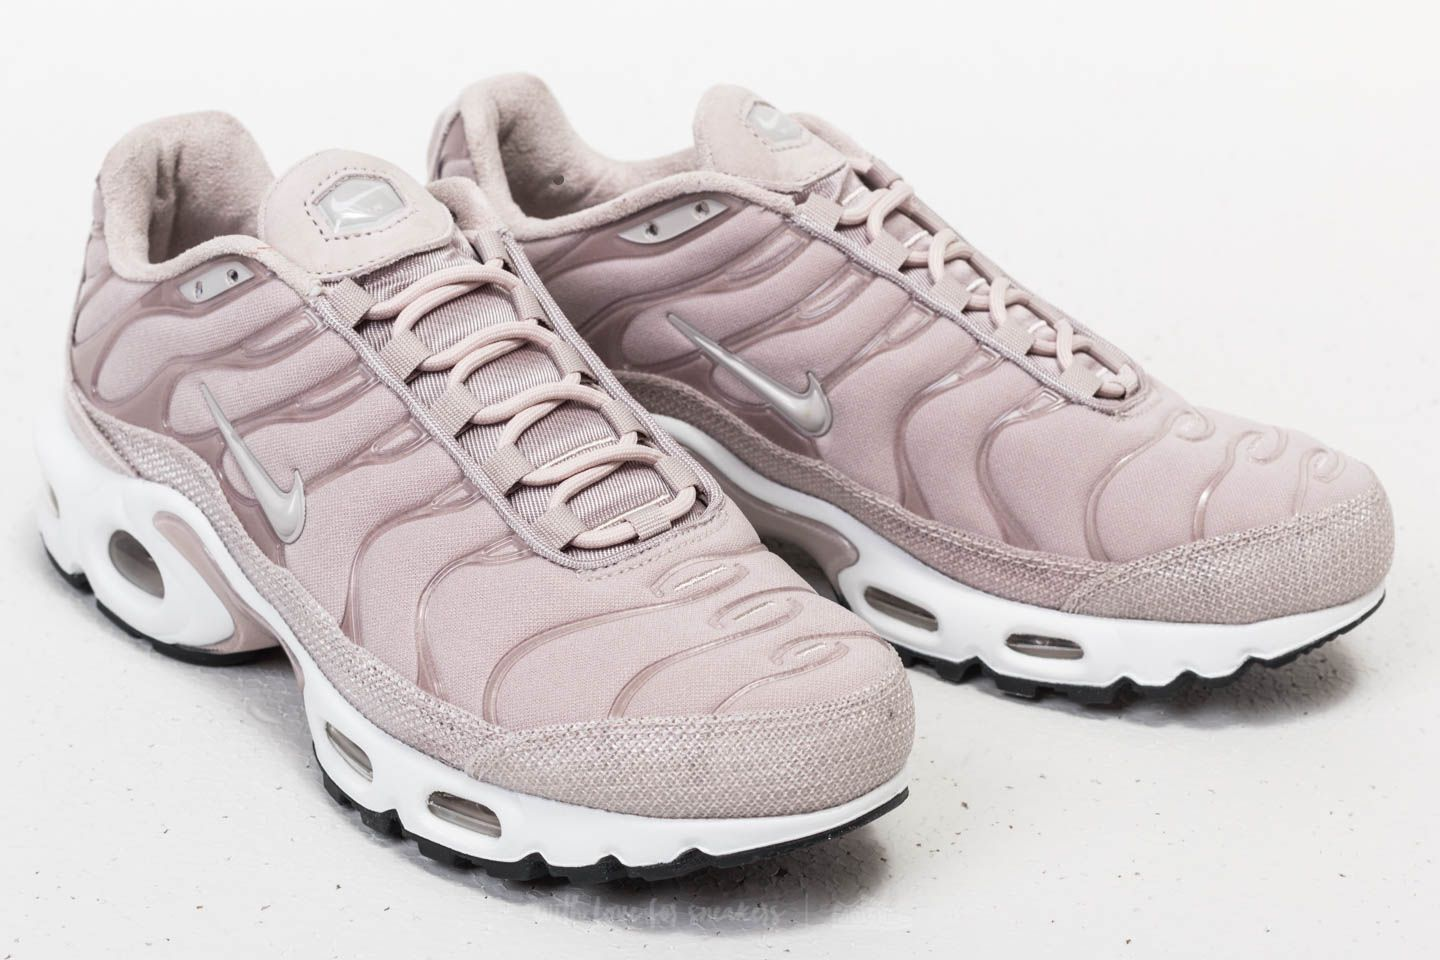 newest b5238 e5a81 Nike Wmns Air Max Plus Premium Moon Particle/ Moon Particle ...